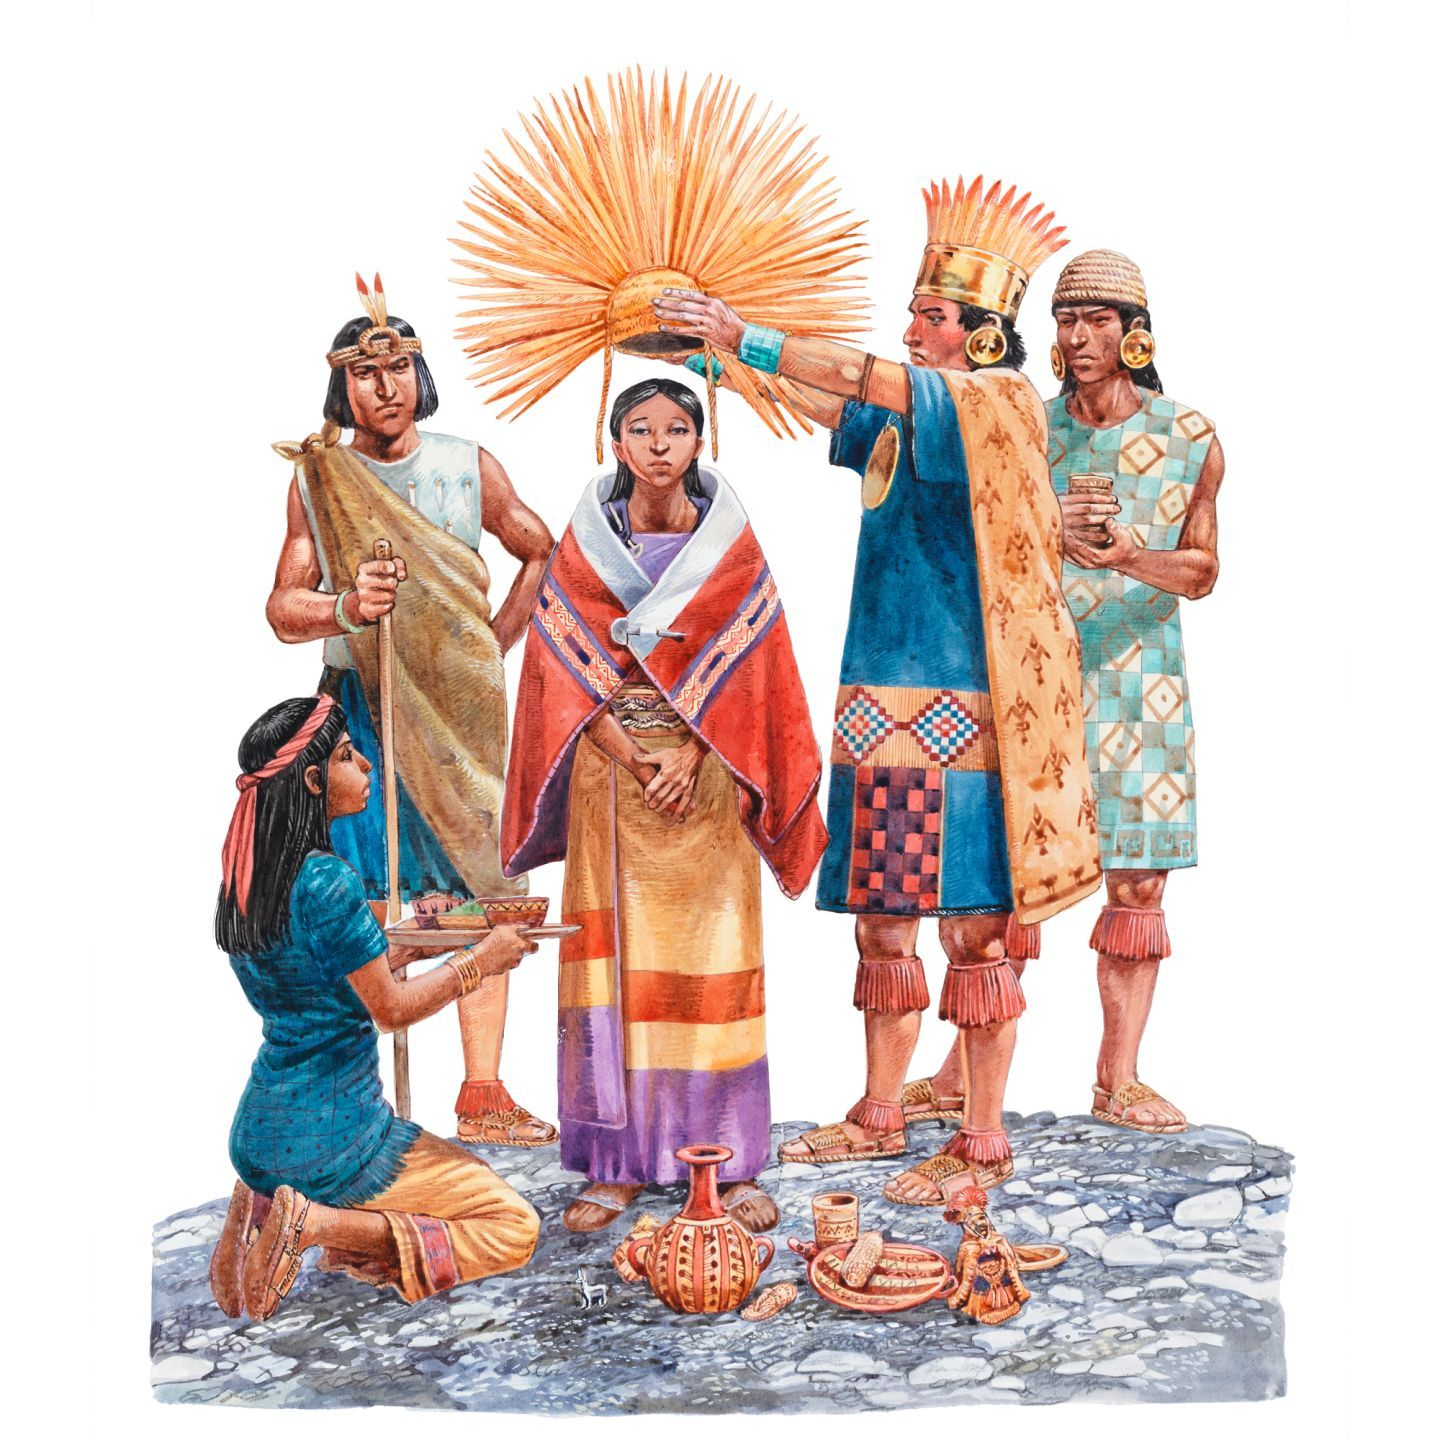 the history and culture of the inca empire The inca empire was absolutely massive, and guaman poma tells us that  in  some andean communities), inca religion and history, quipu accounting,  the  inca empire covered a spectrum of languages and cultures, and it.